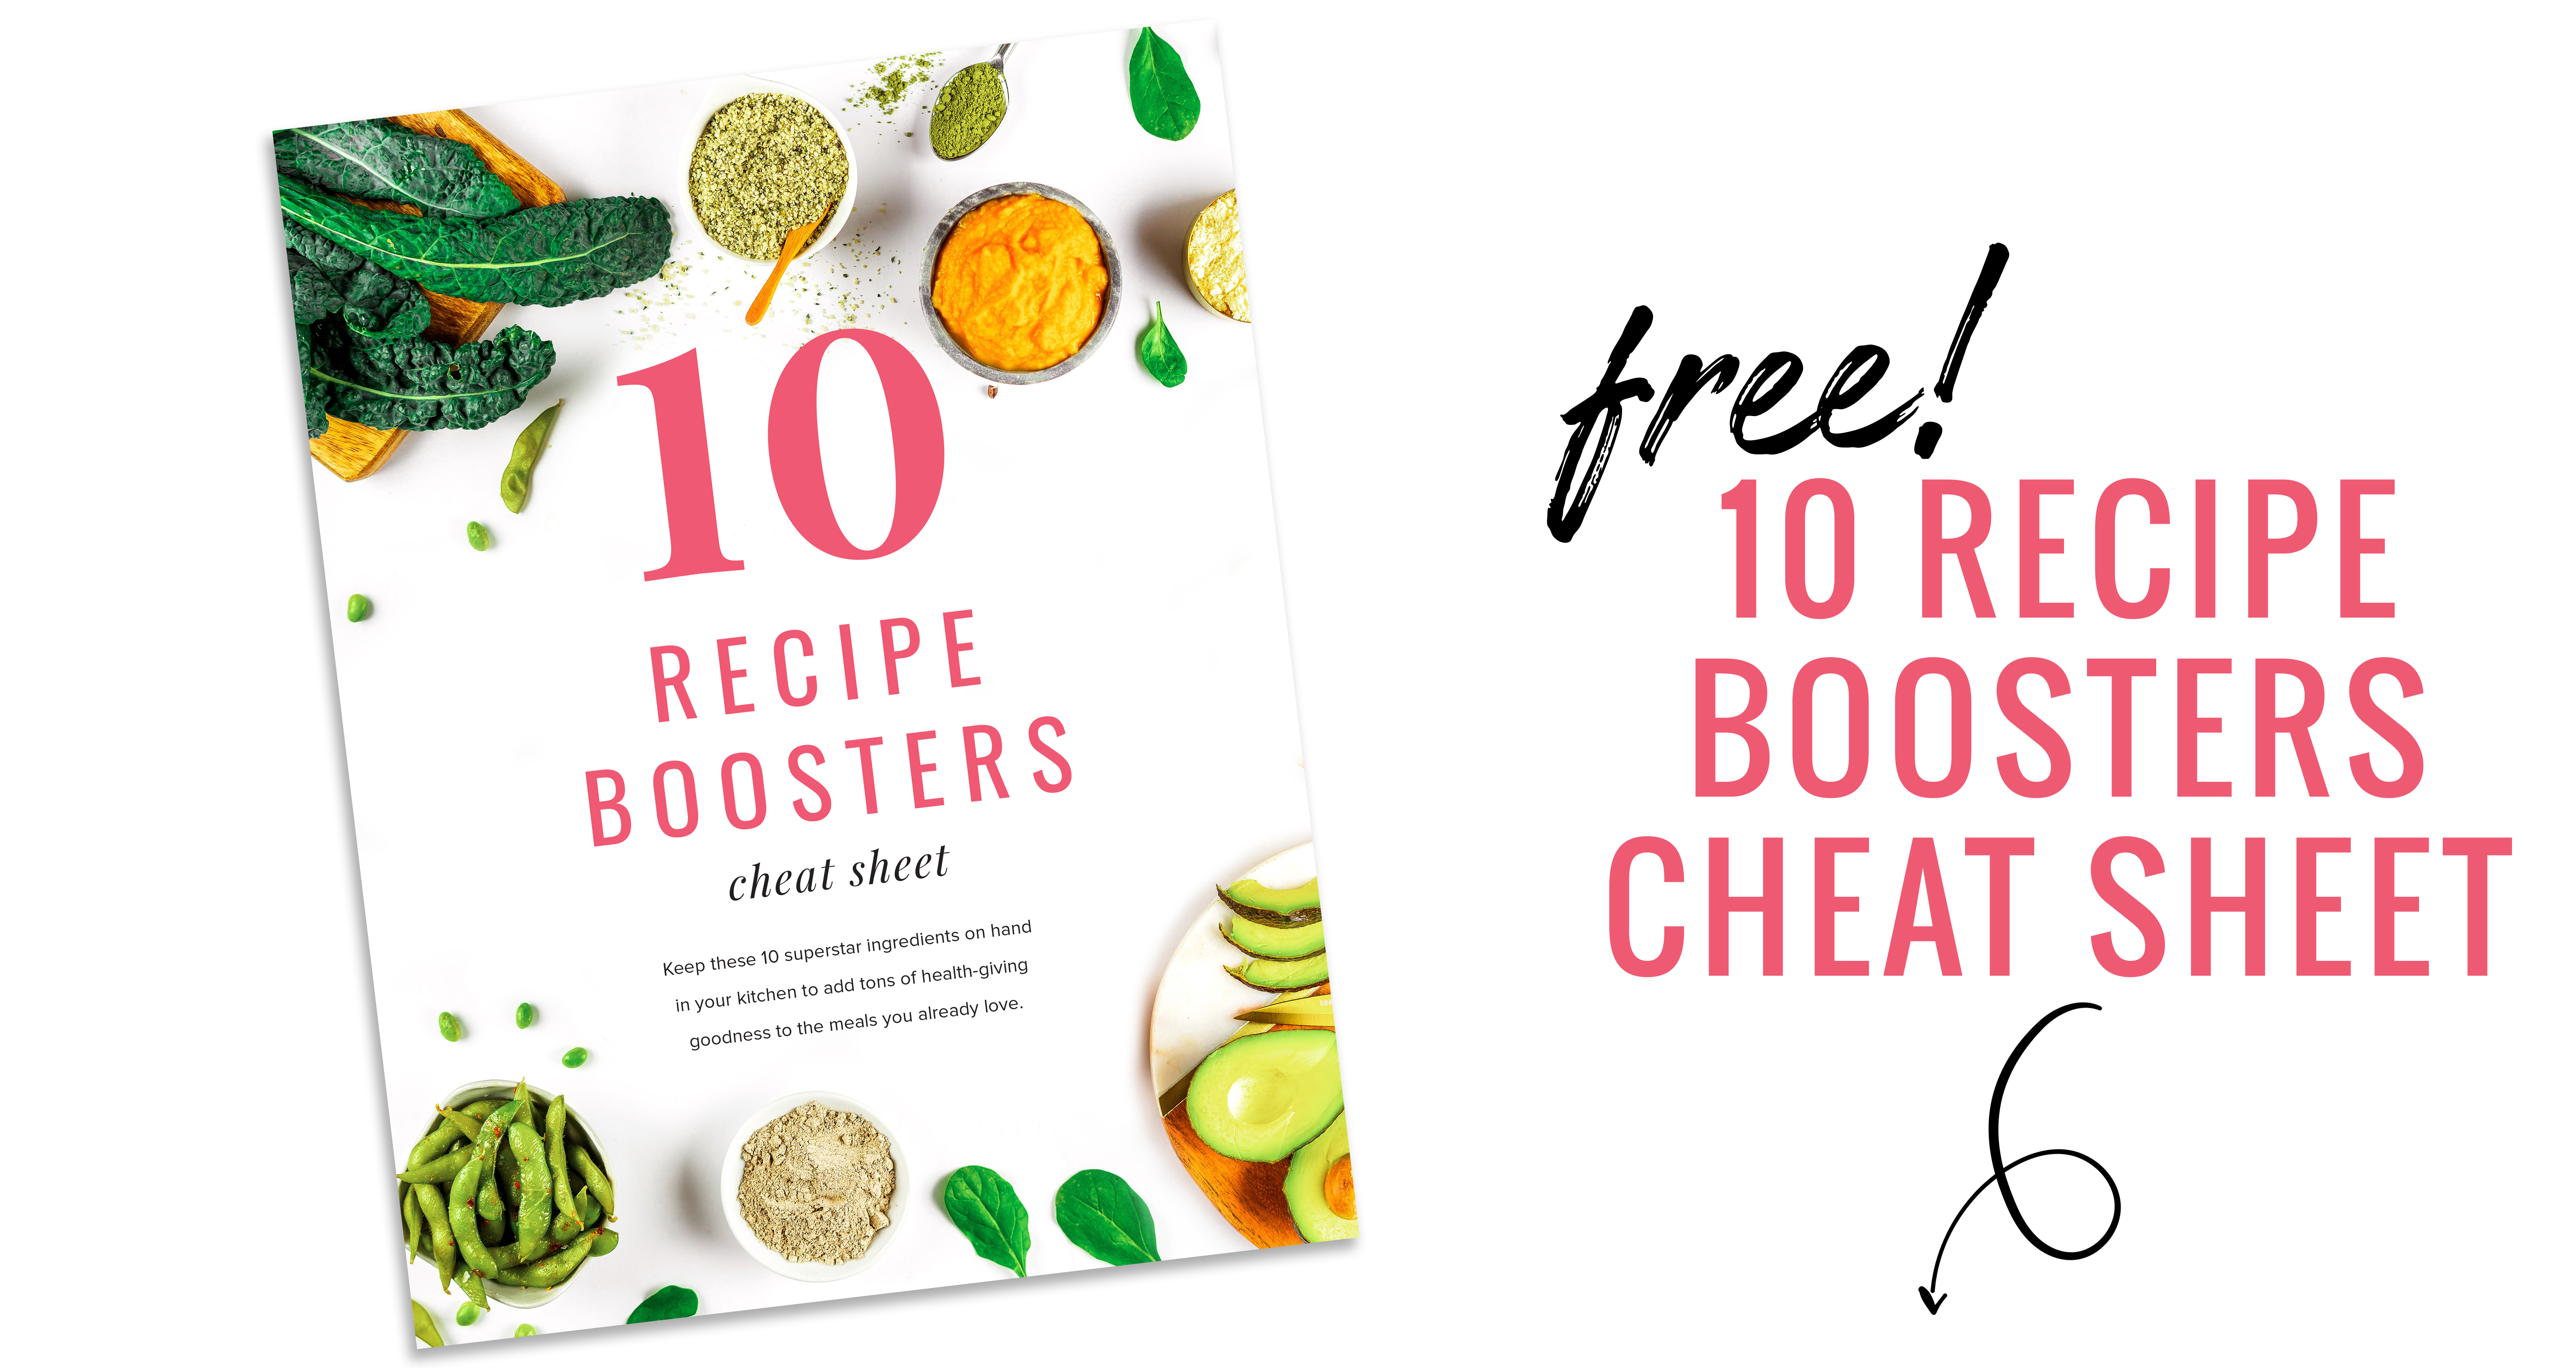 10 Recipe Boosters Cheat Sheet